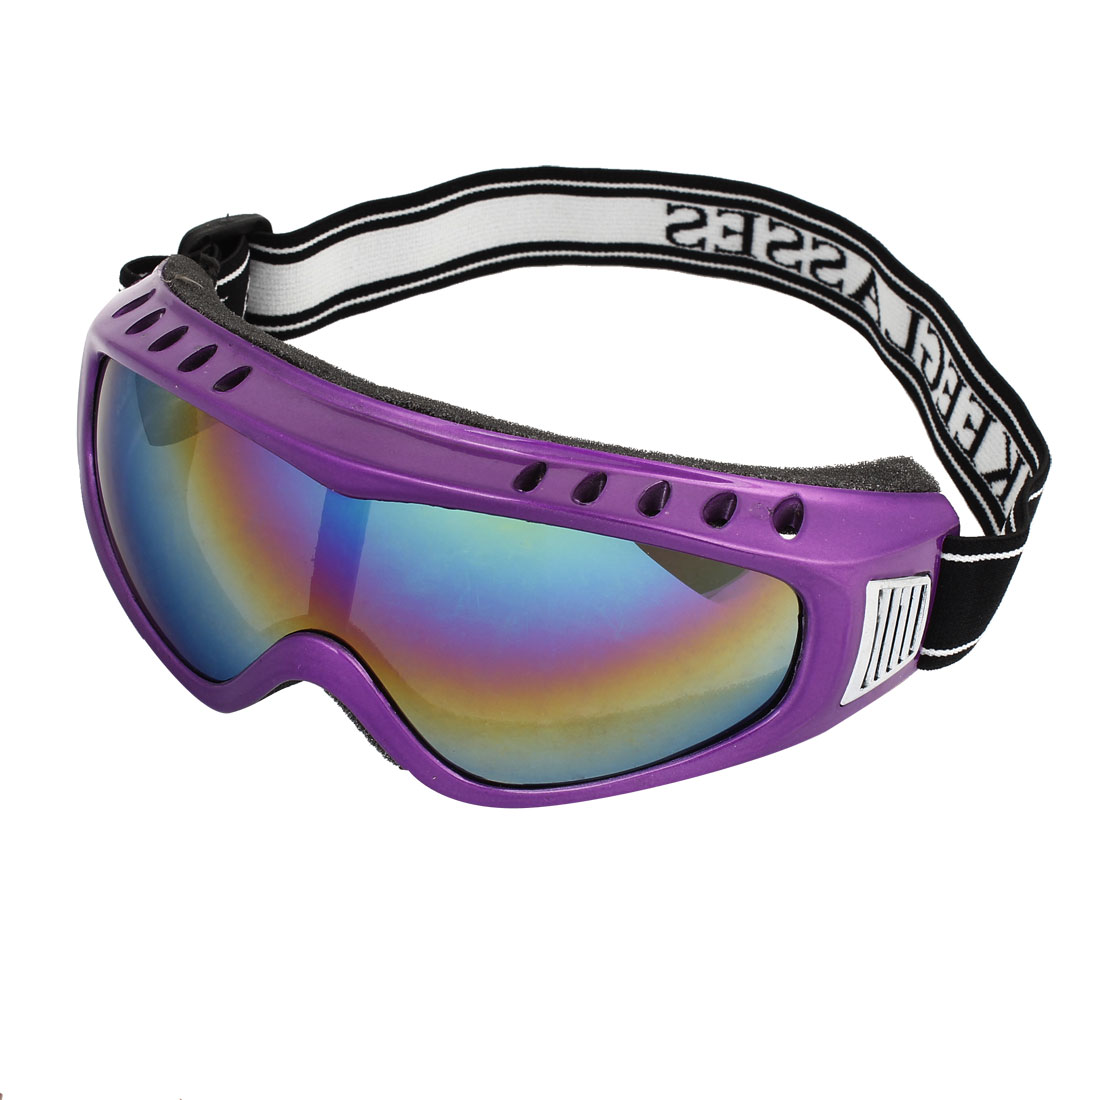 Colorful Lens Purple Full Rimmed Sponge Loaded Motorbike Safety Goggles Glasses Black